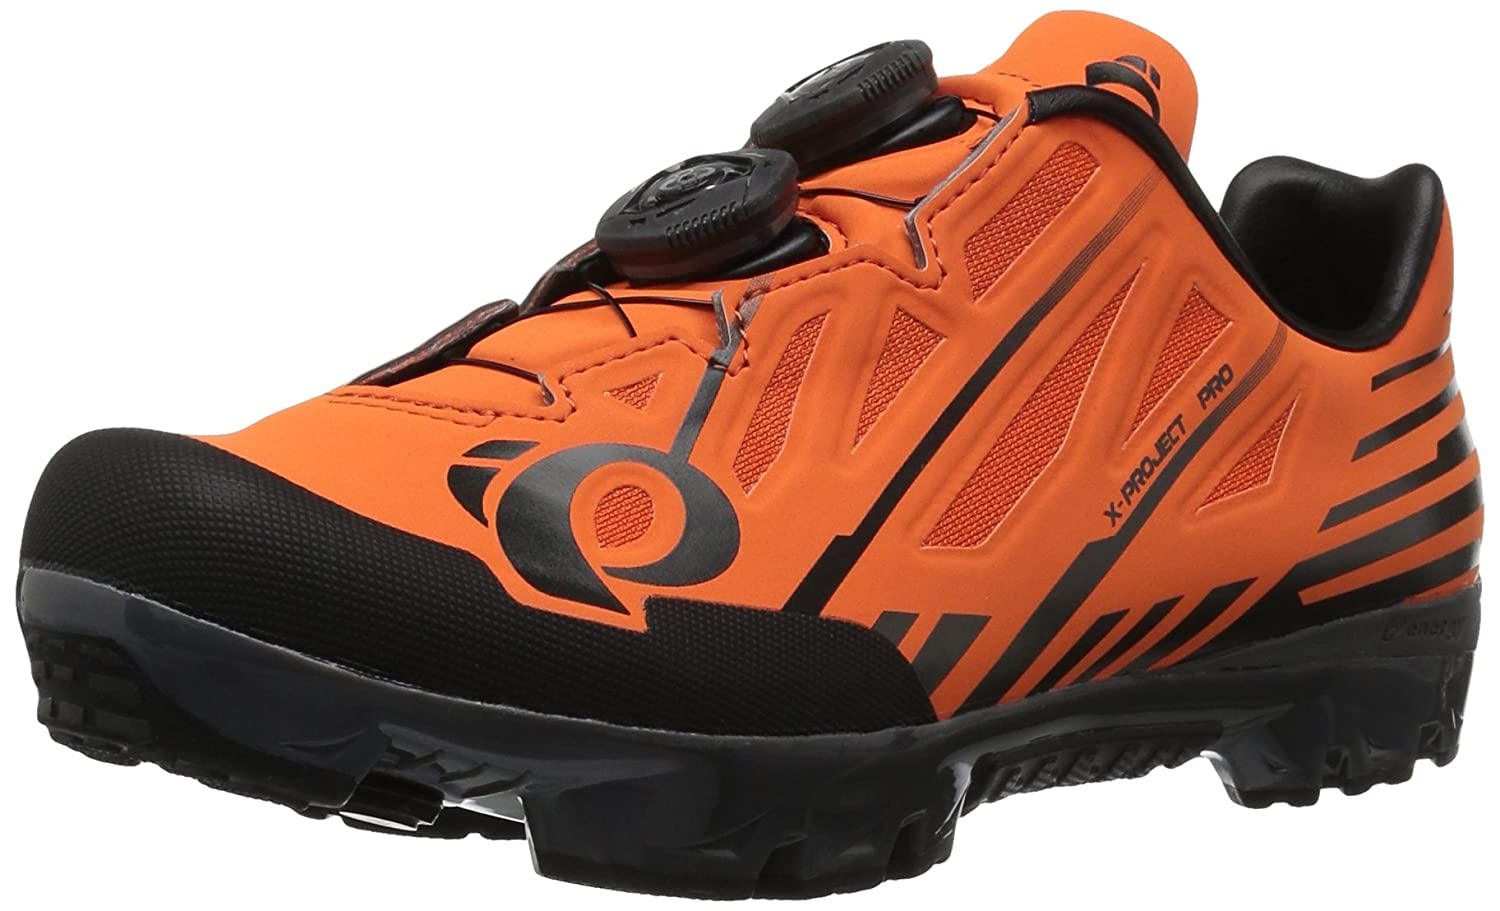 [パールイズミ] ユニセックスアダルト X-PROJECT PRO B01GKLIA18 39.5 EU/6.5 D US|Screaming Orange/Black Screaming Orange/Black 39.5 EU/6.5 D US